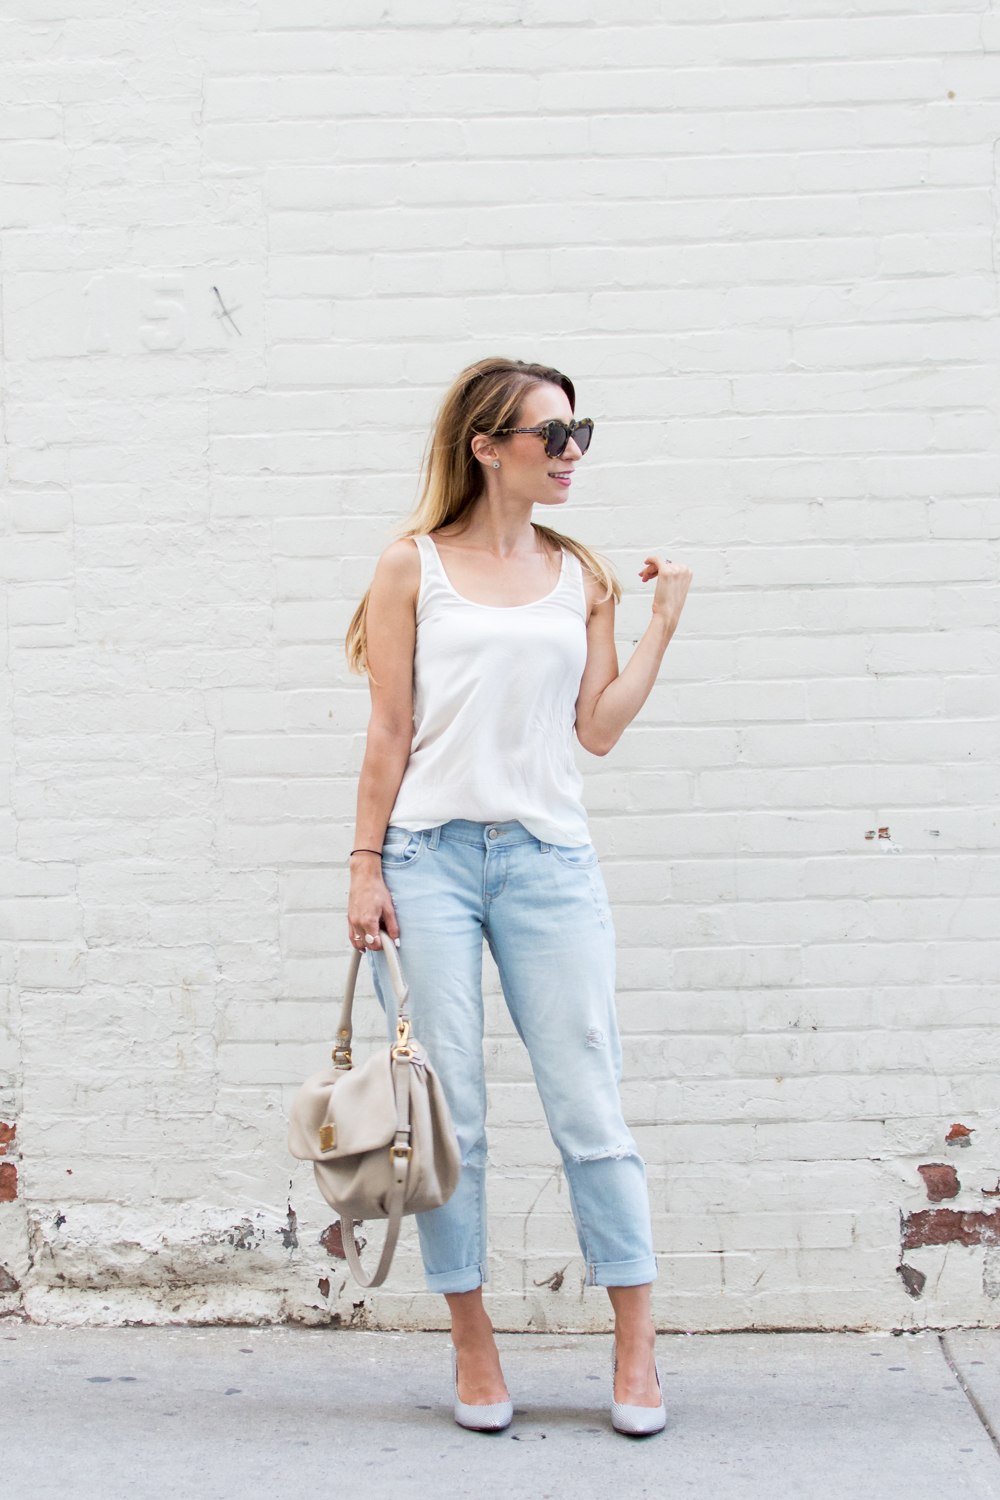 old navy boyfriend jeans club monaco shoes outfit